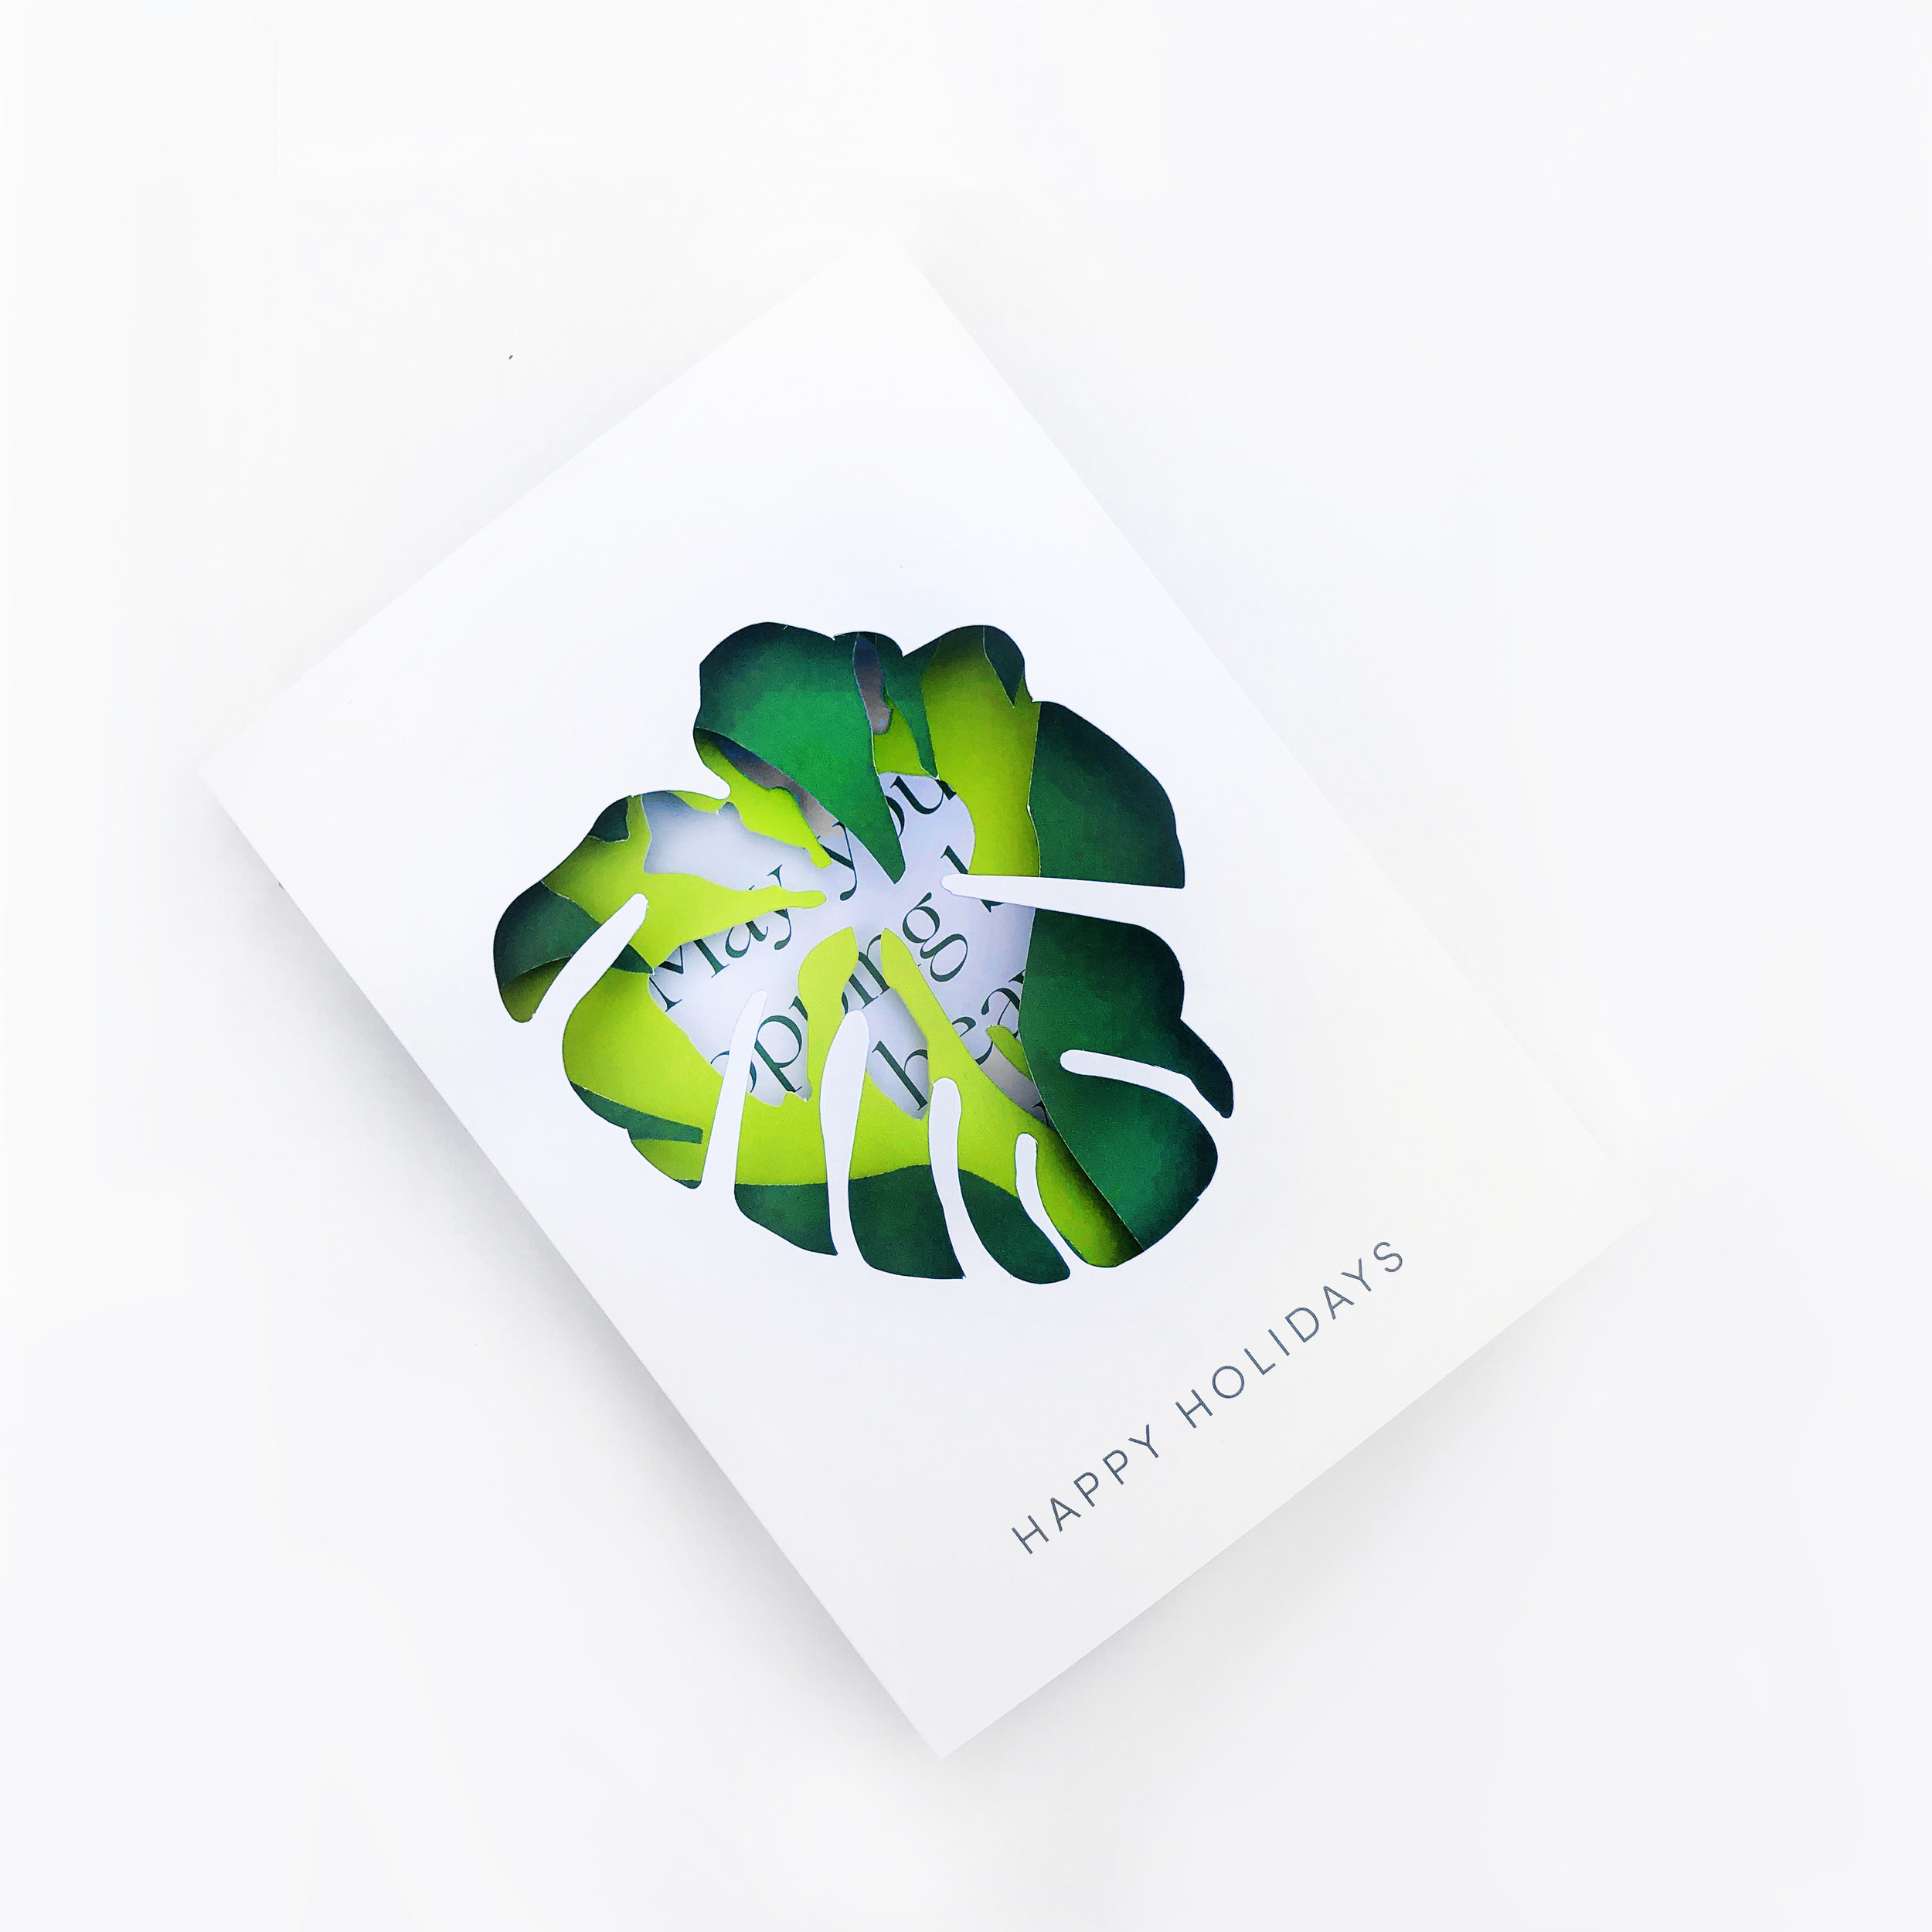 Holidays Card design and Production for Bal Harbour Shops